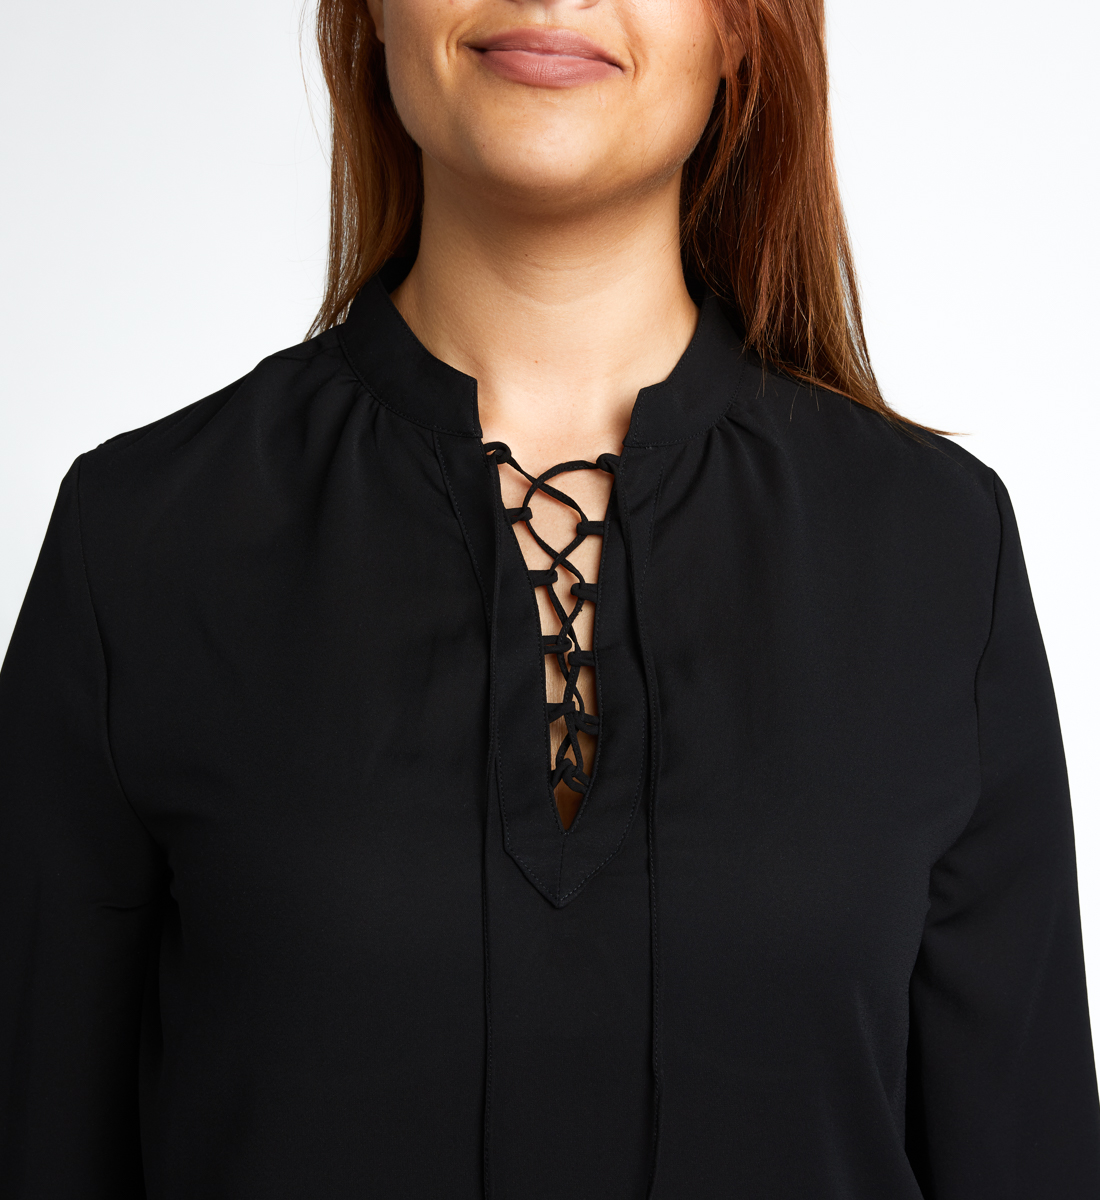 Eloise Lace-Up Blouse, Black, hi-res